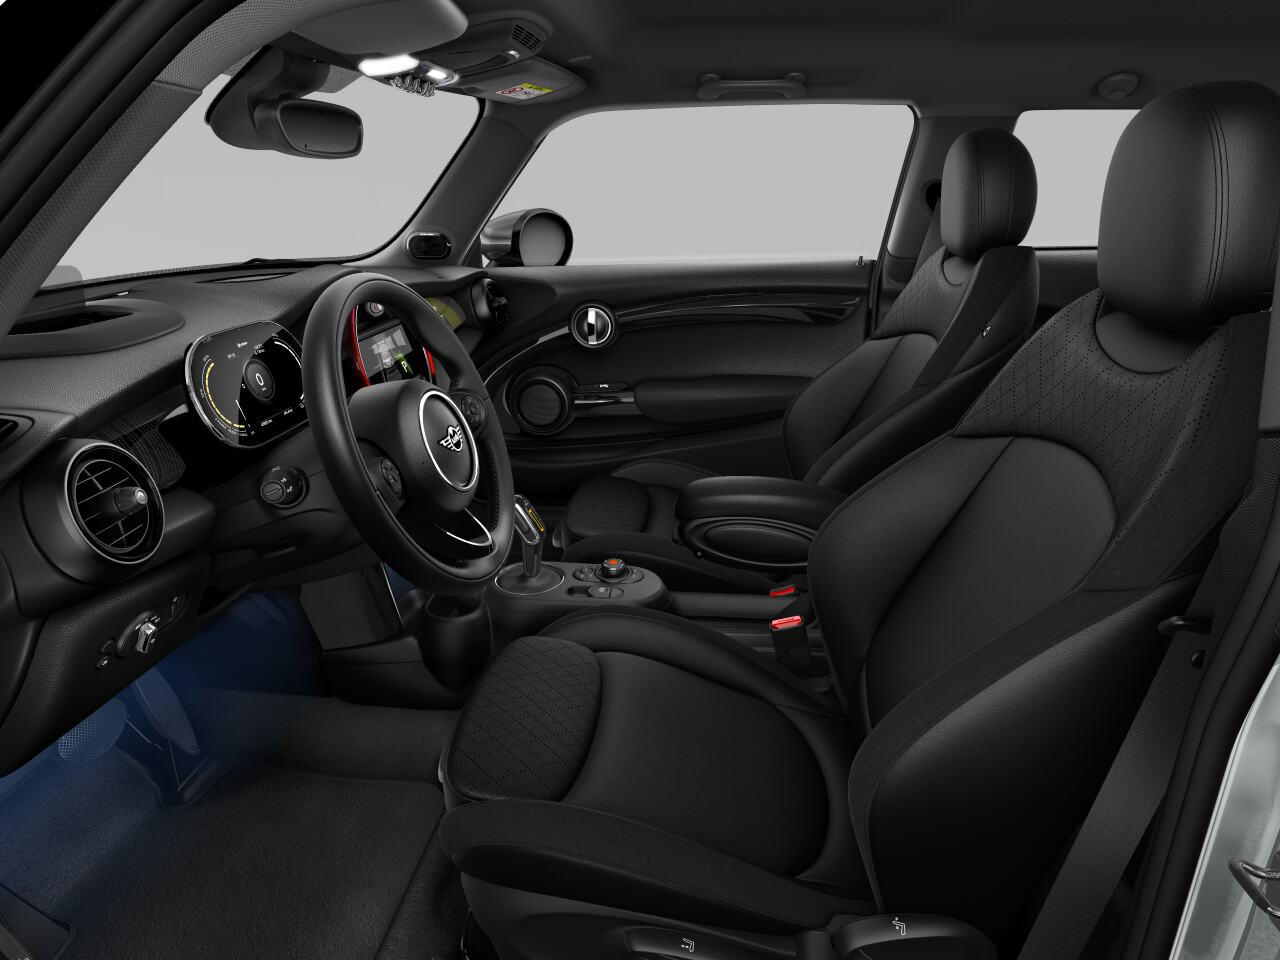 Mini electric – Package L – interior view - driver's side